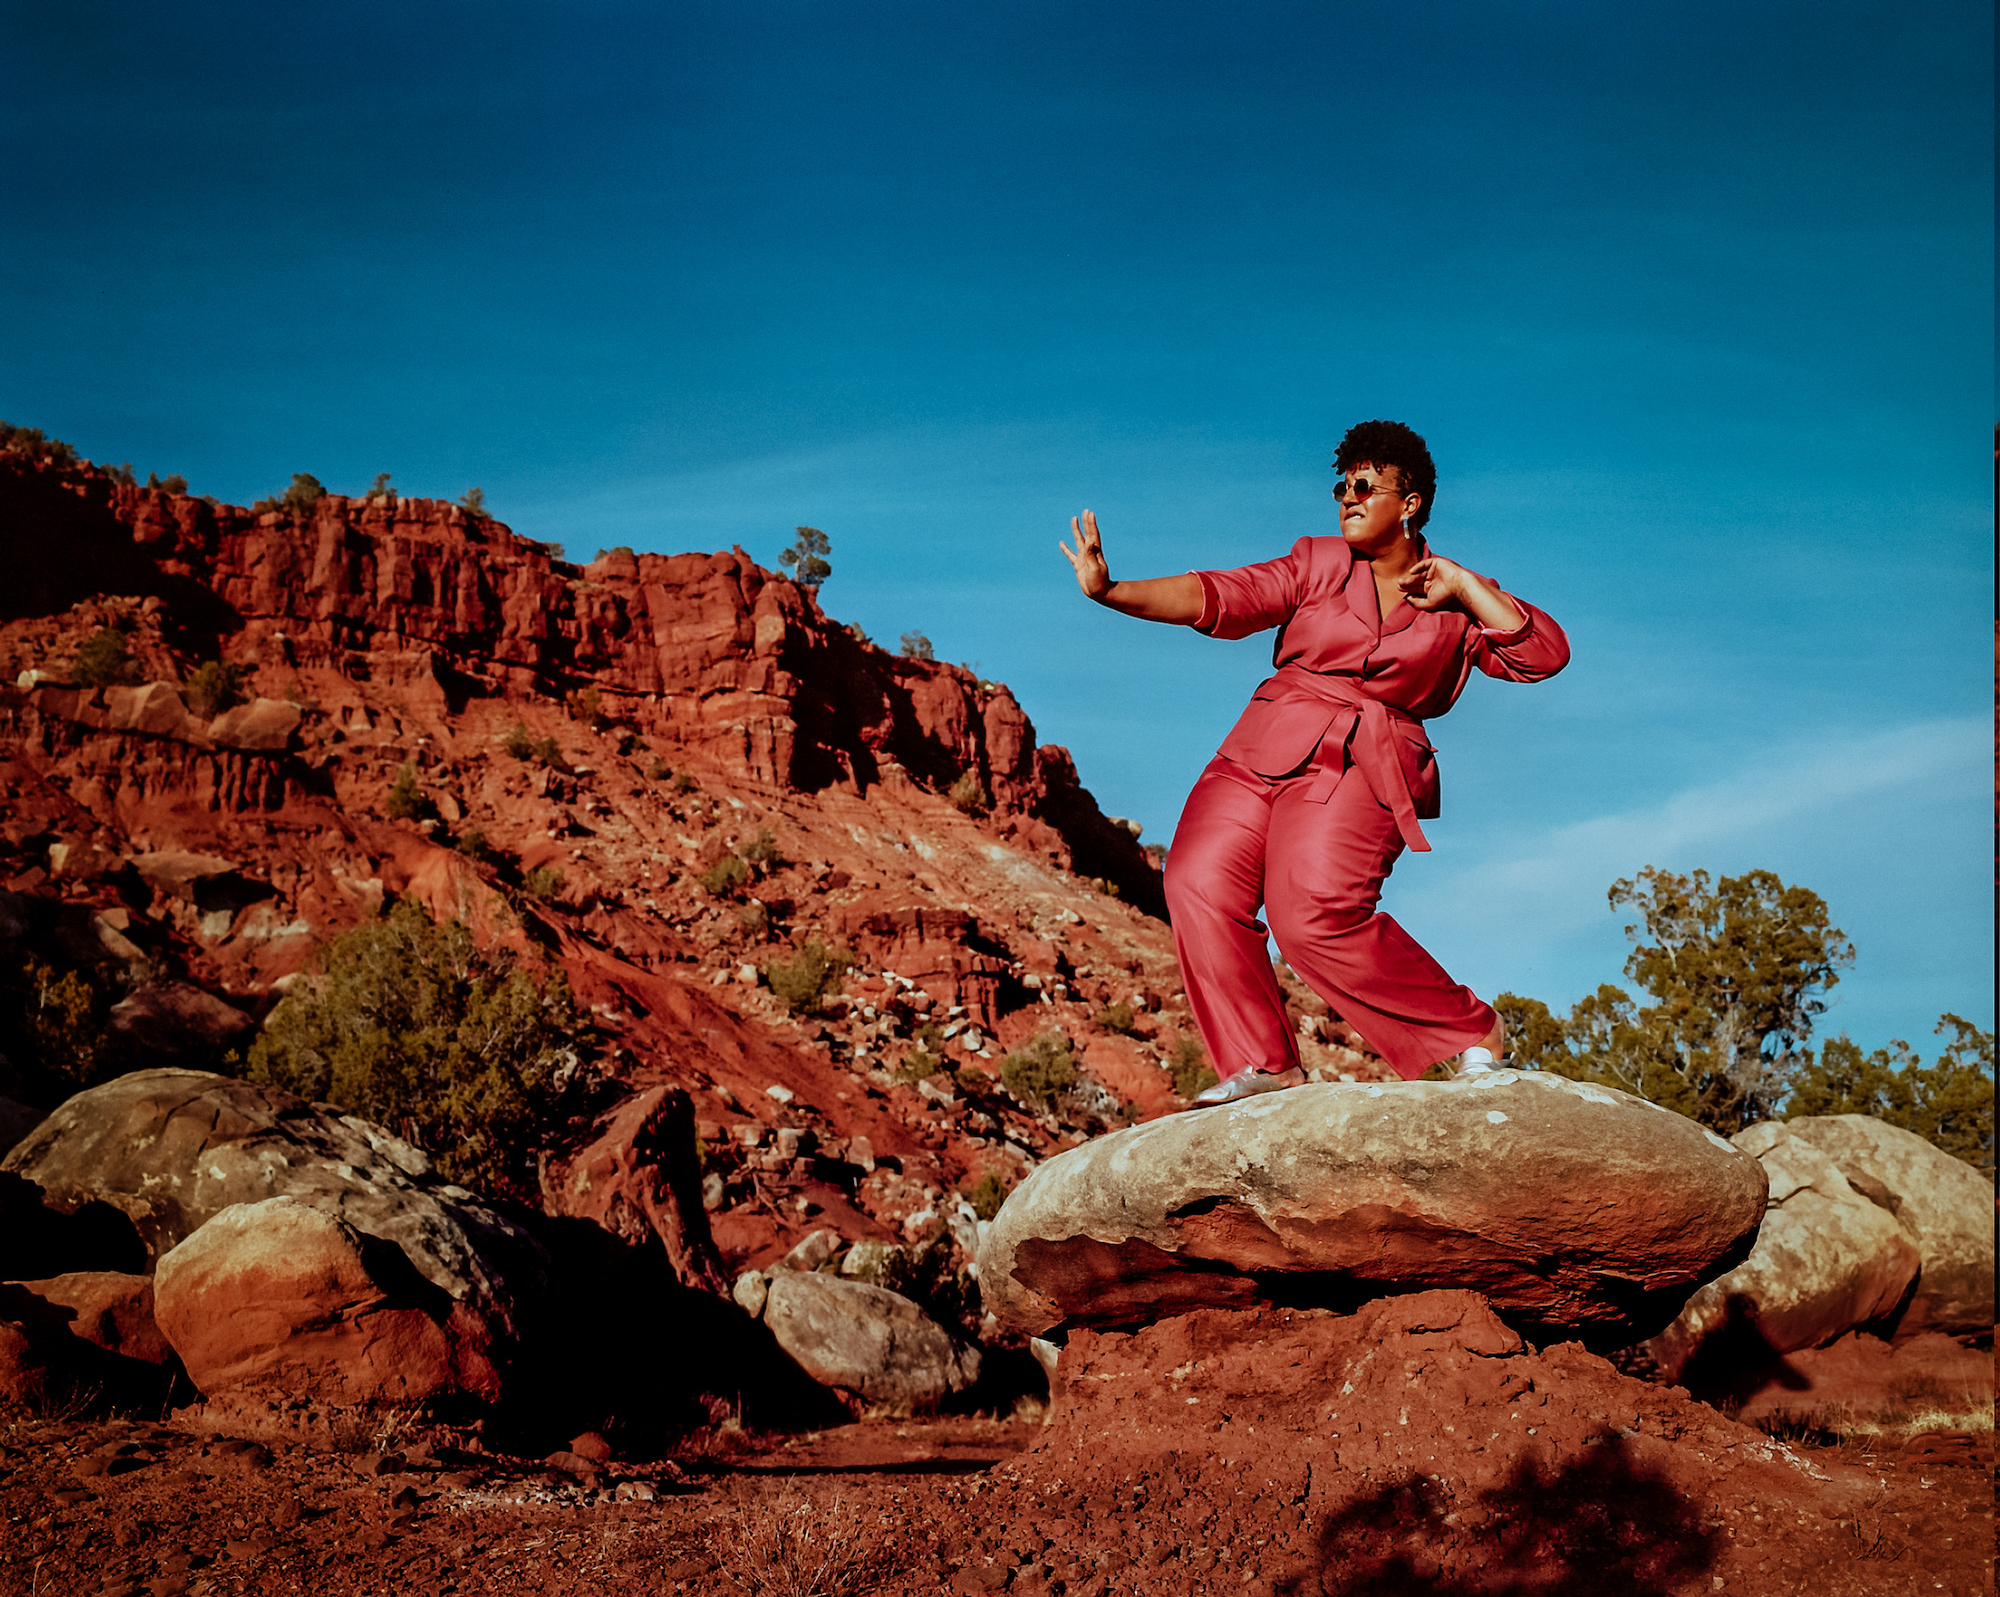 Brittany Howard for new album Jaime pink outfit